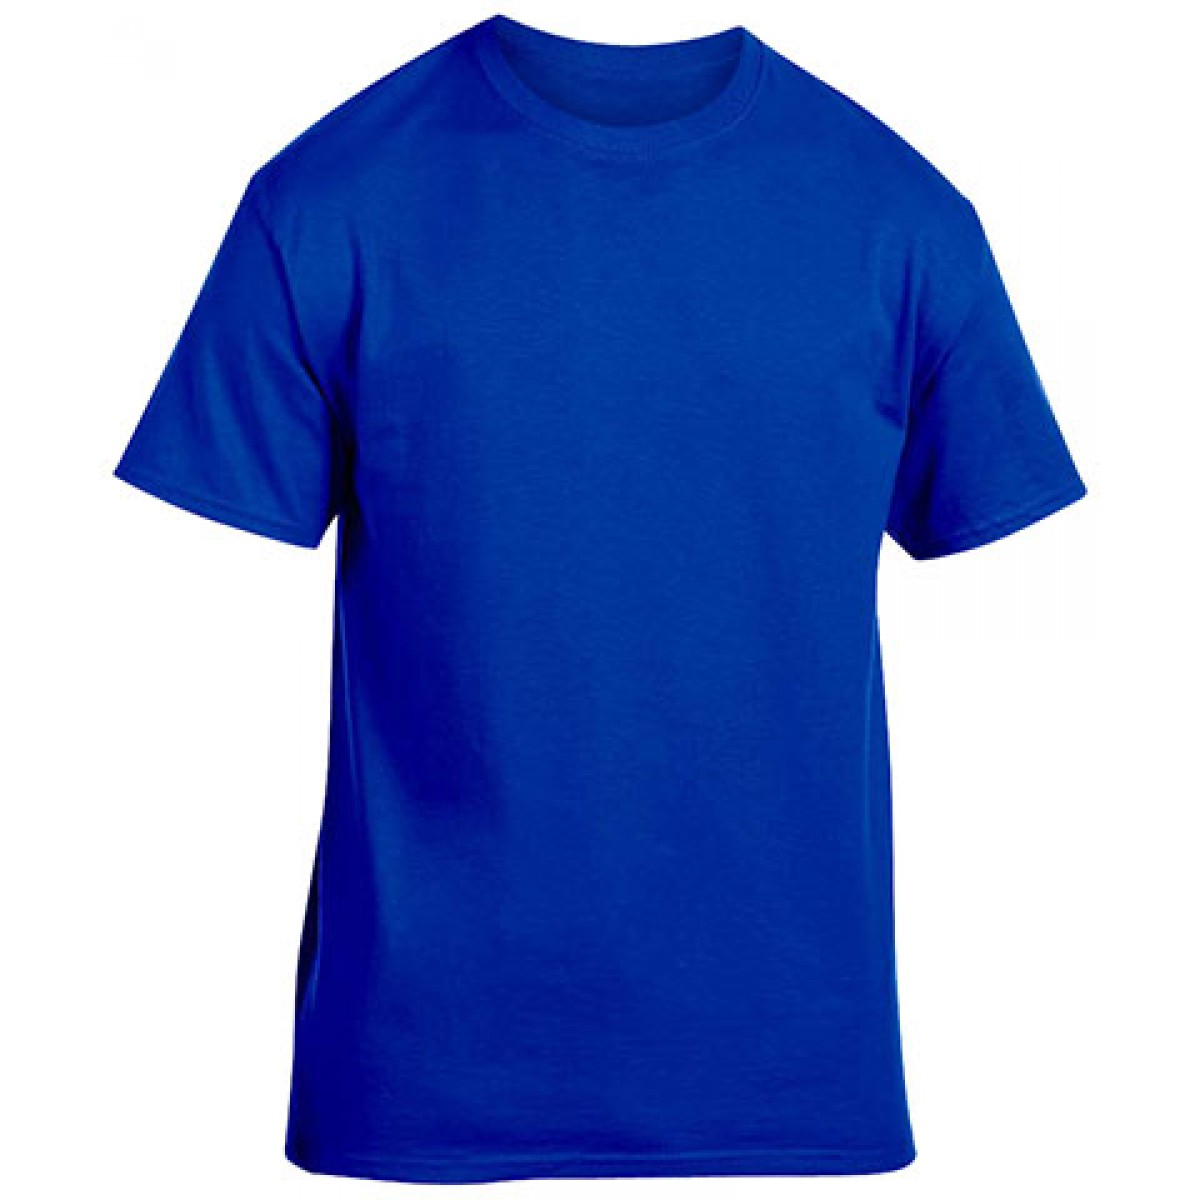 Heavy Cotton Activewear T-Shirt-Royal Blue-XL